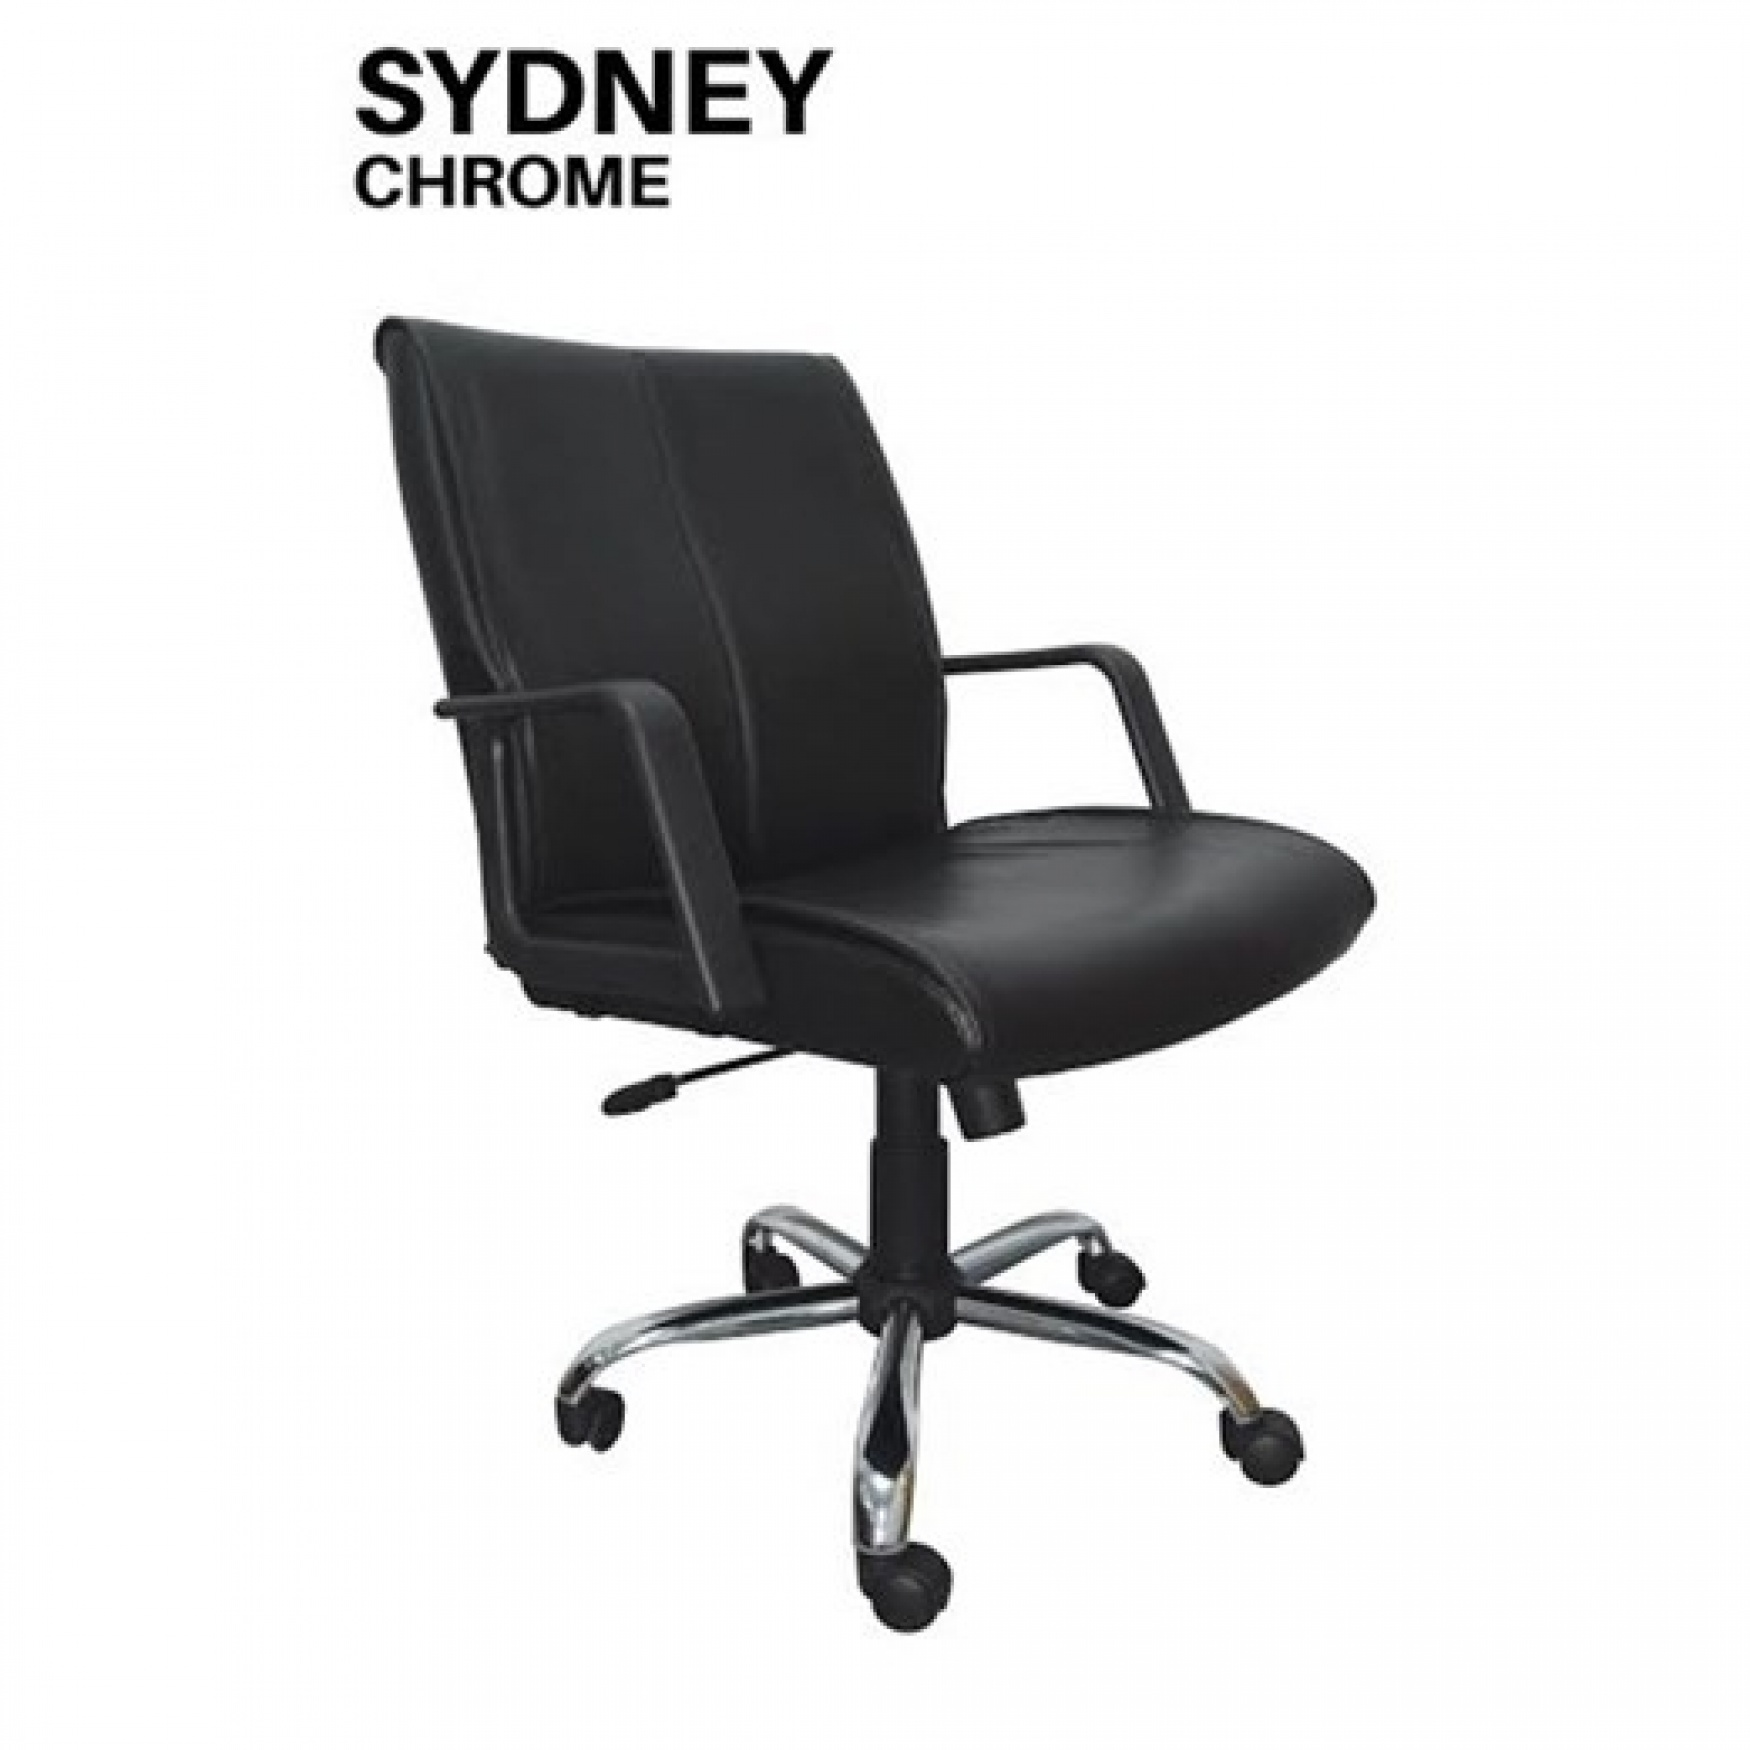 office chairs images. SYDNEY CHROME UNO SERIES - OFFICE CHAIRS Products | MEKAR FURNITURE Jual Furniture Termurah Dan Terlengkap Di Jakarta Office Chairs Images M